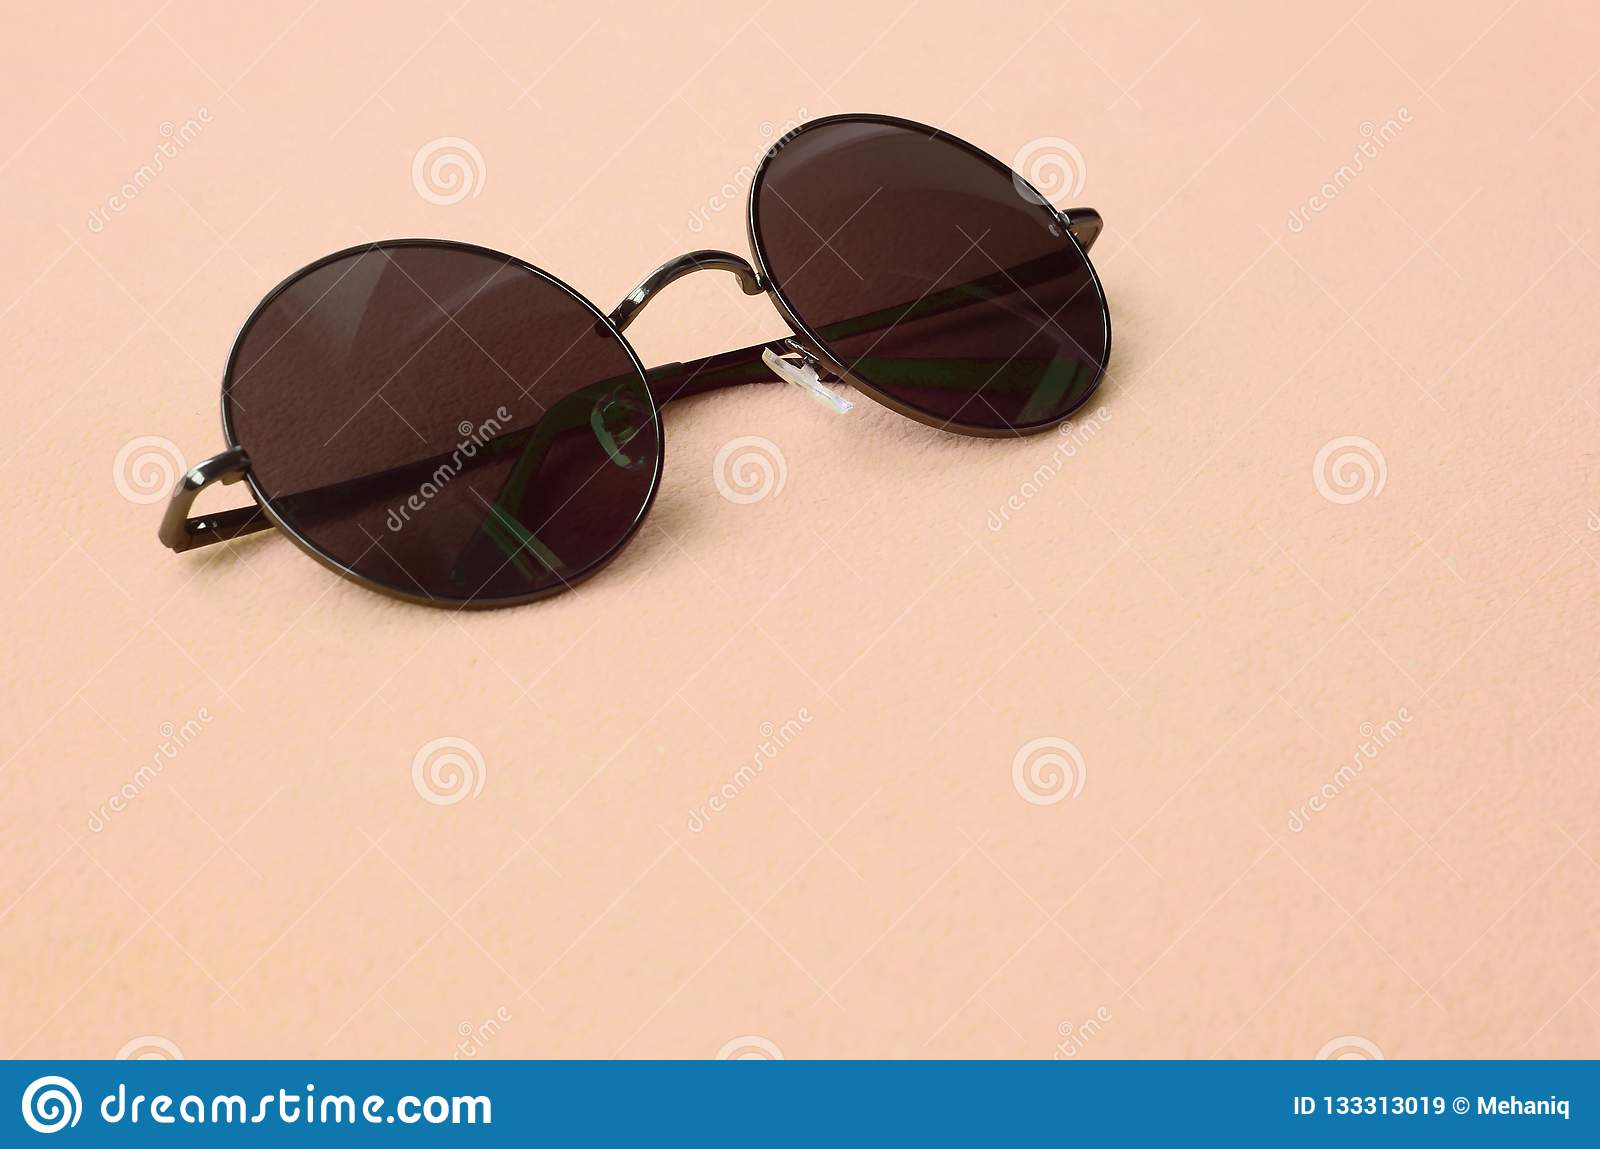 0406b0a2fd57 Stylish black sunglasses with round glasses lies on a blanket made of soft  and fluffy light orange fleece fabric. Fashionable background picture in  fashion ...